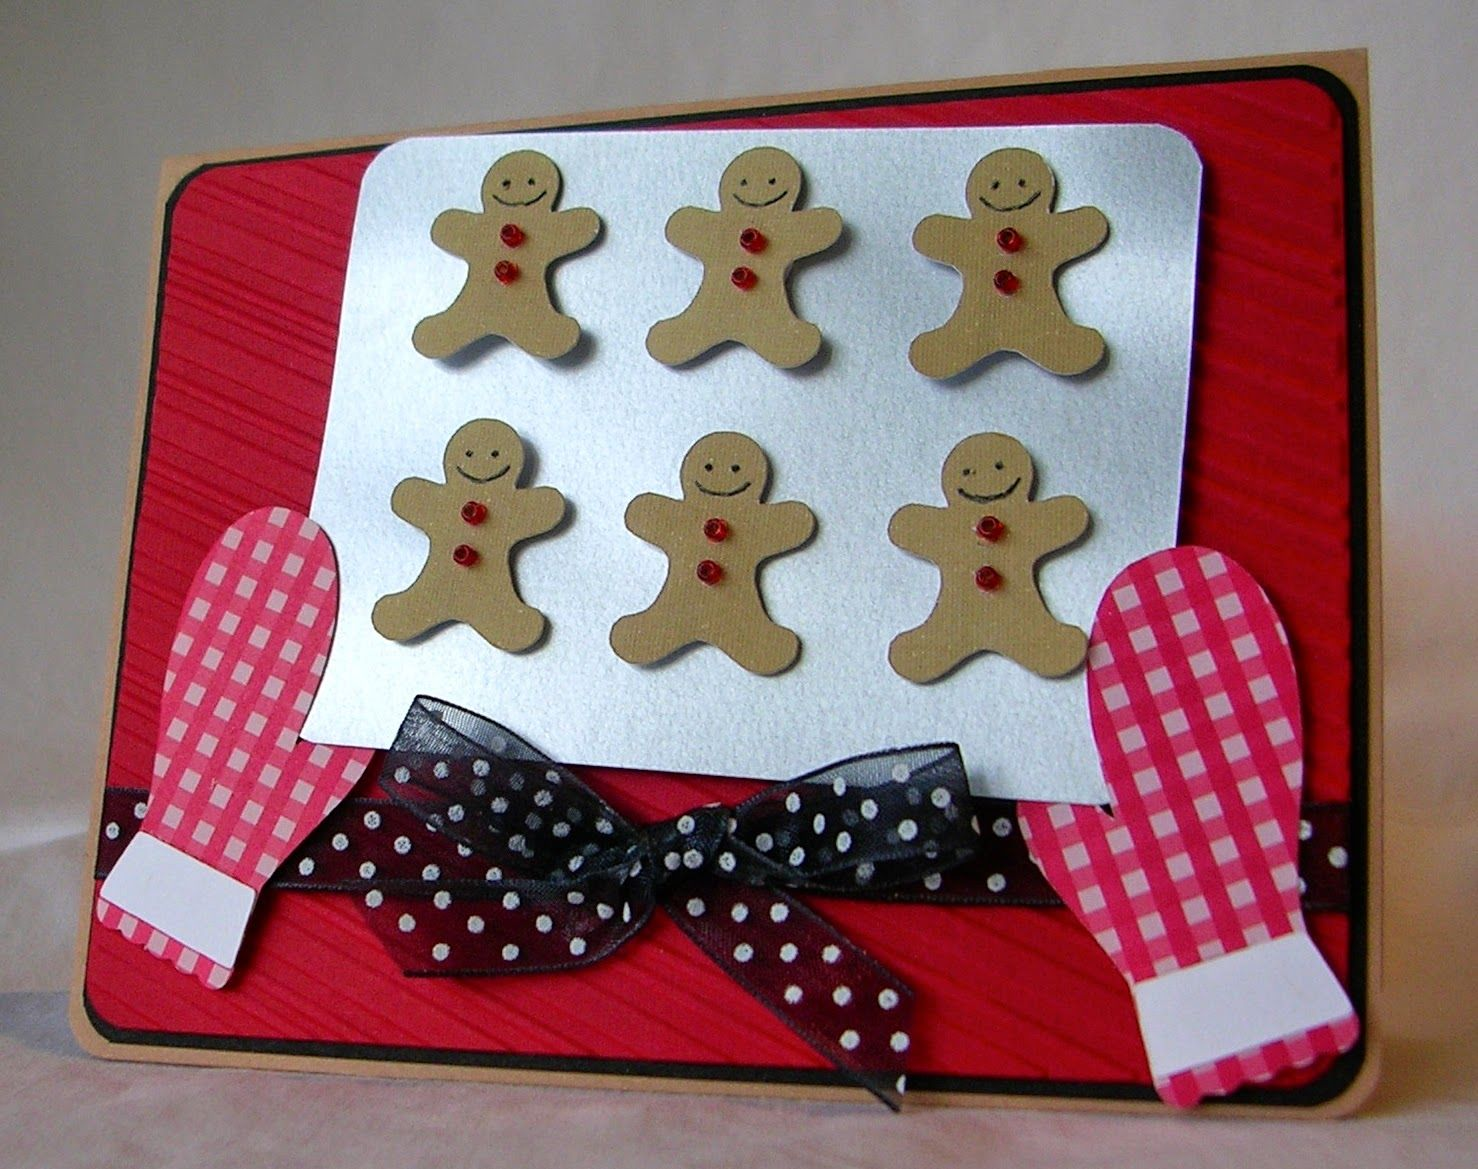 Such a cute way to do gingerbread! Made by Pam of From My